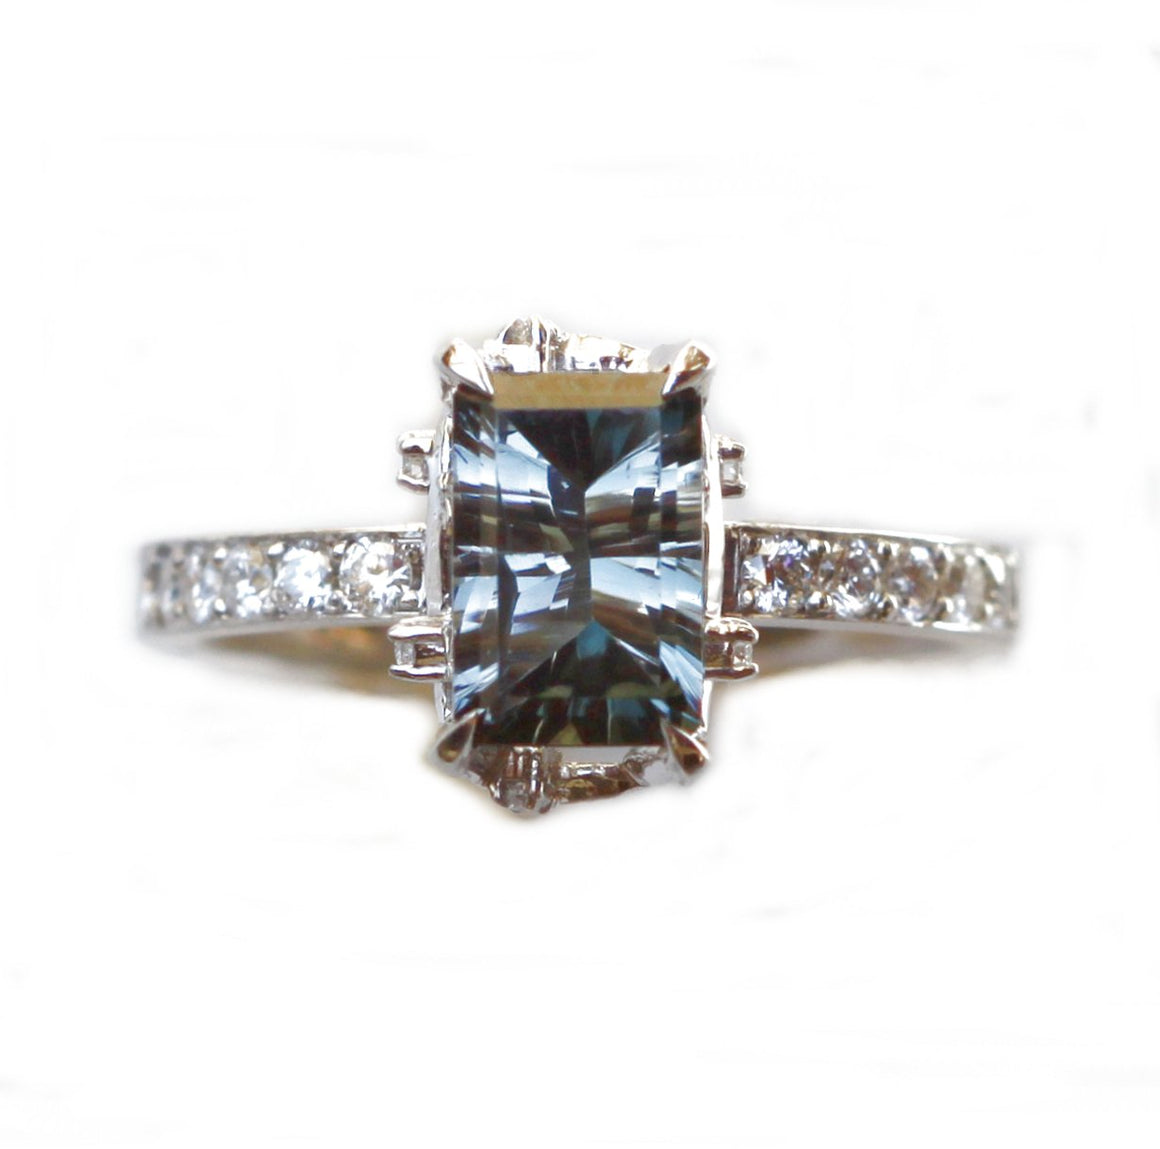 Tourmaline Fortitude Ring